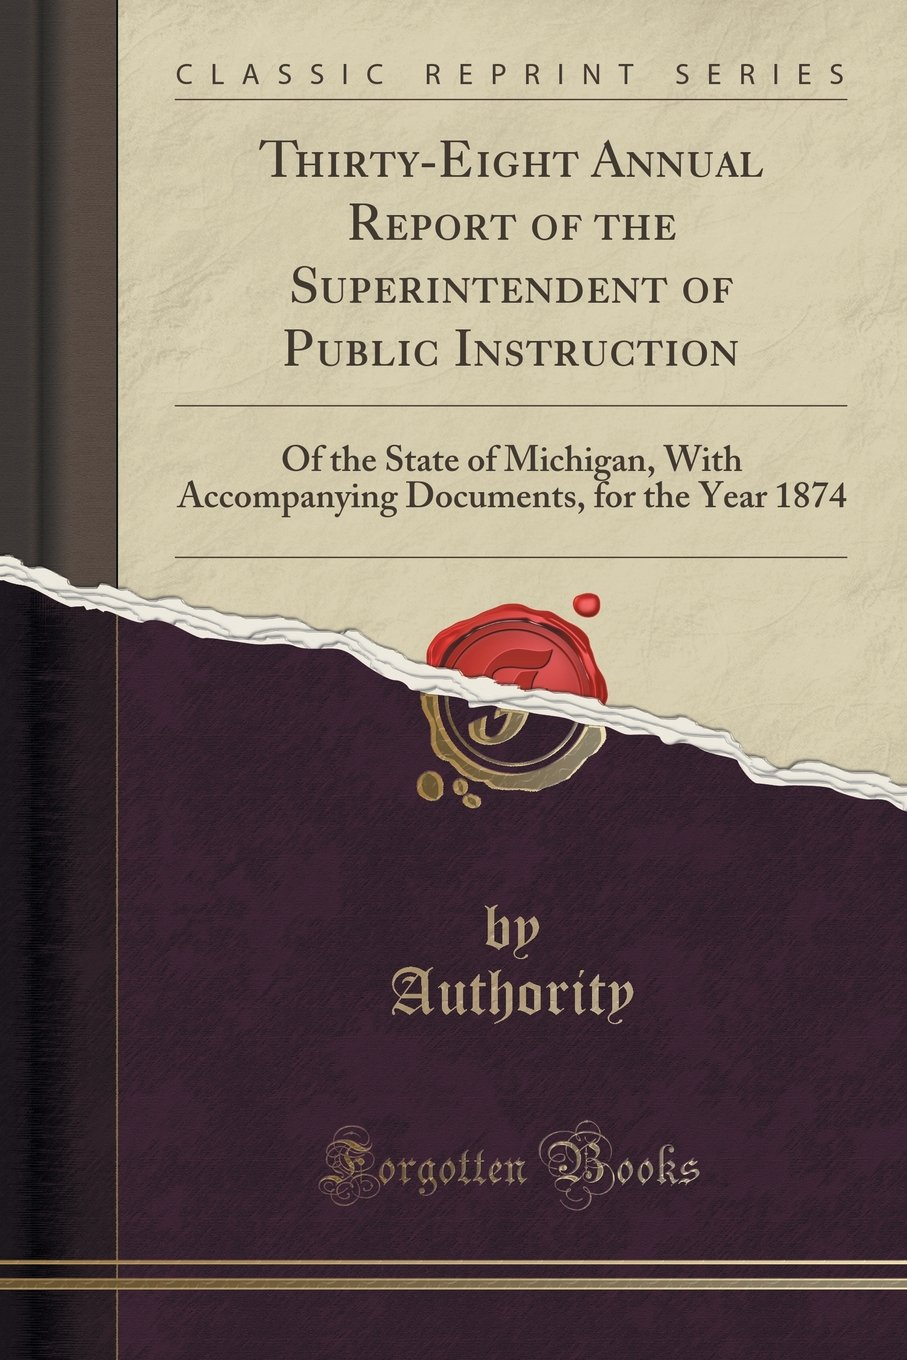 Read Online Thirty-Eight Annual Report of the Superintendent of Public Instruction: Of the State of Michigan, With Accompanying Documents, for the Year 1874 (Classic Reprint) PDF